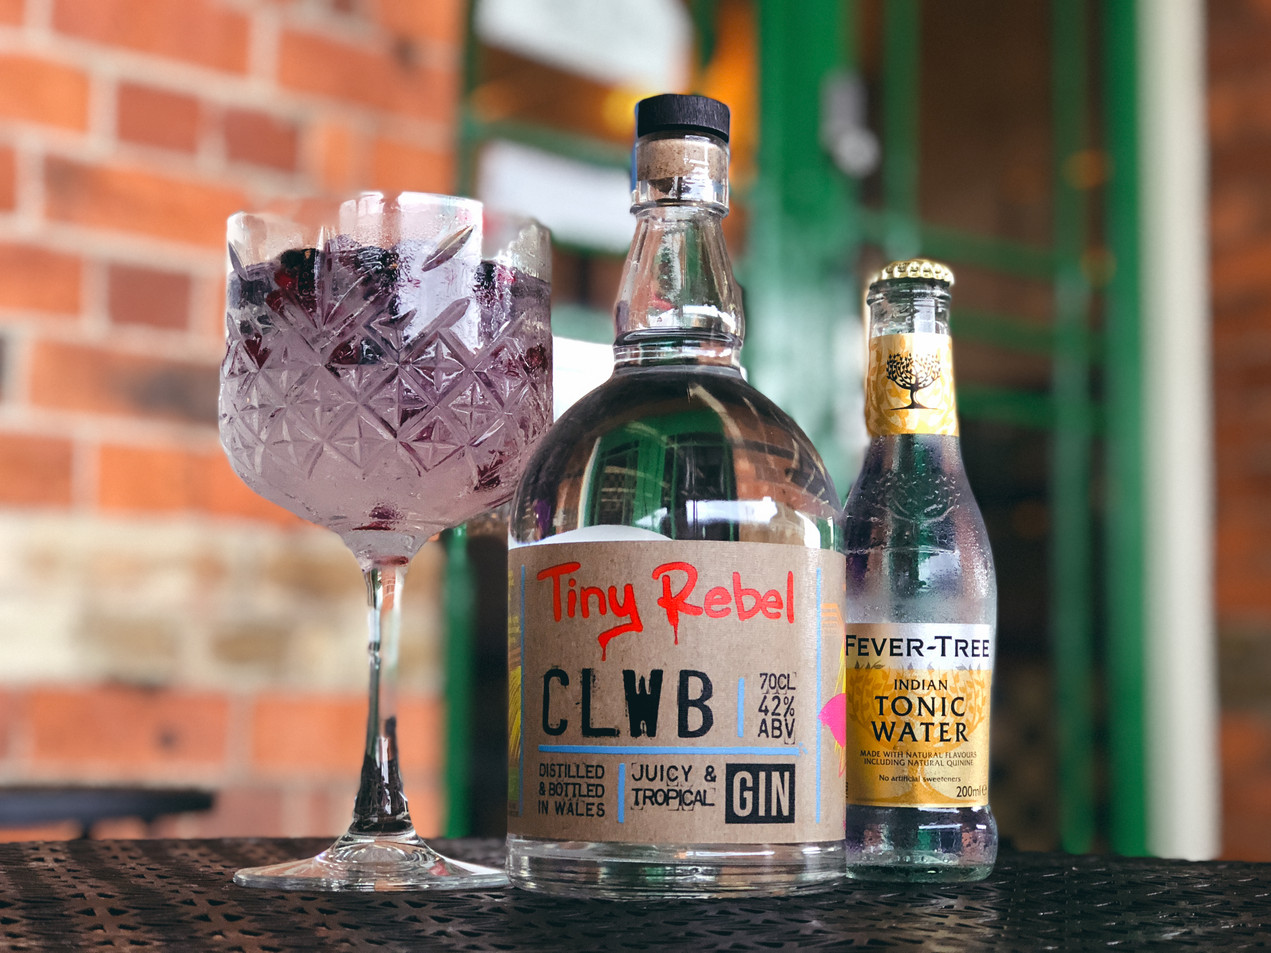 CLWB Tropical Gin